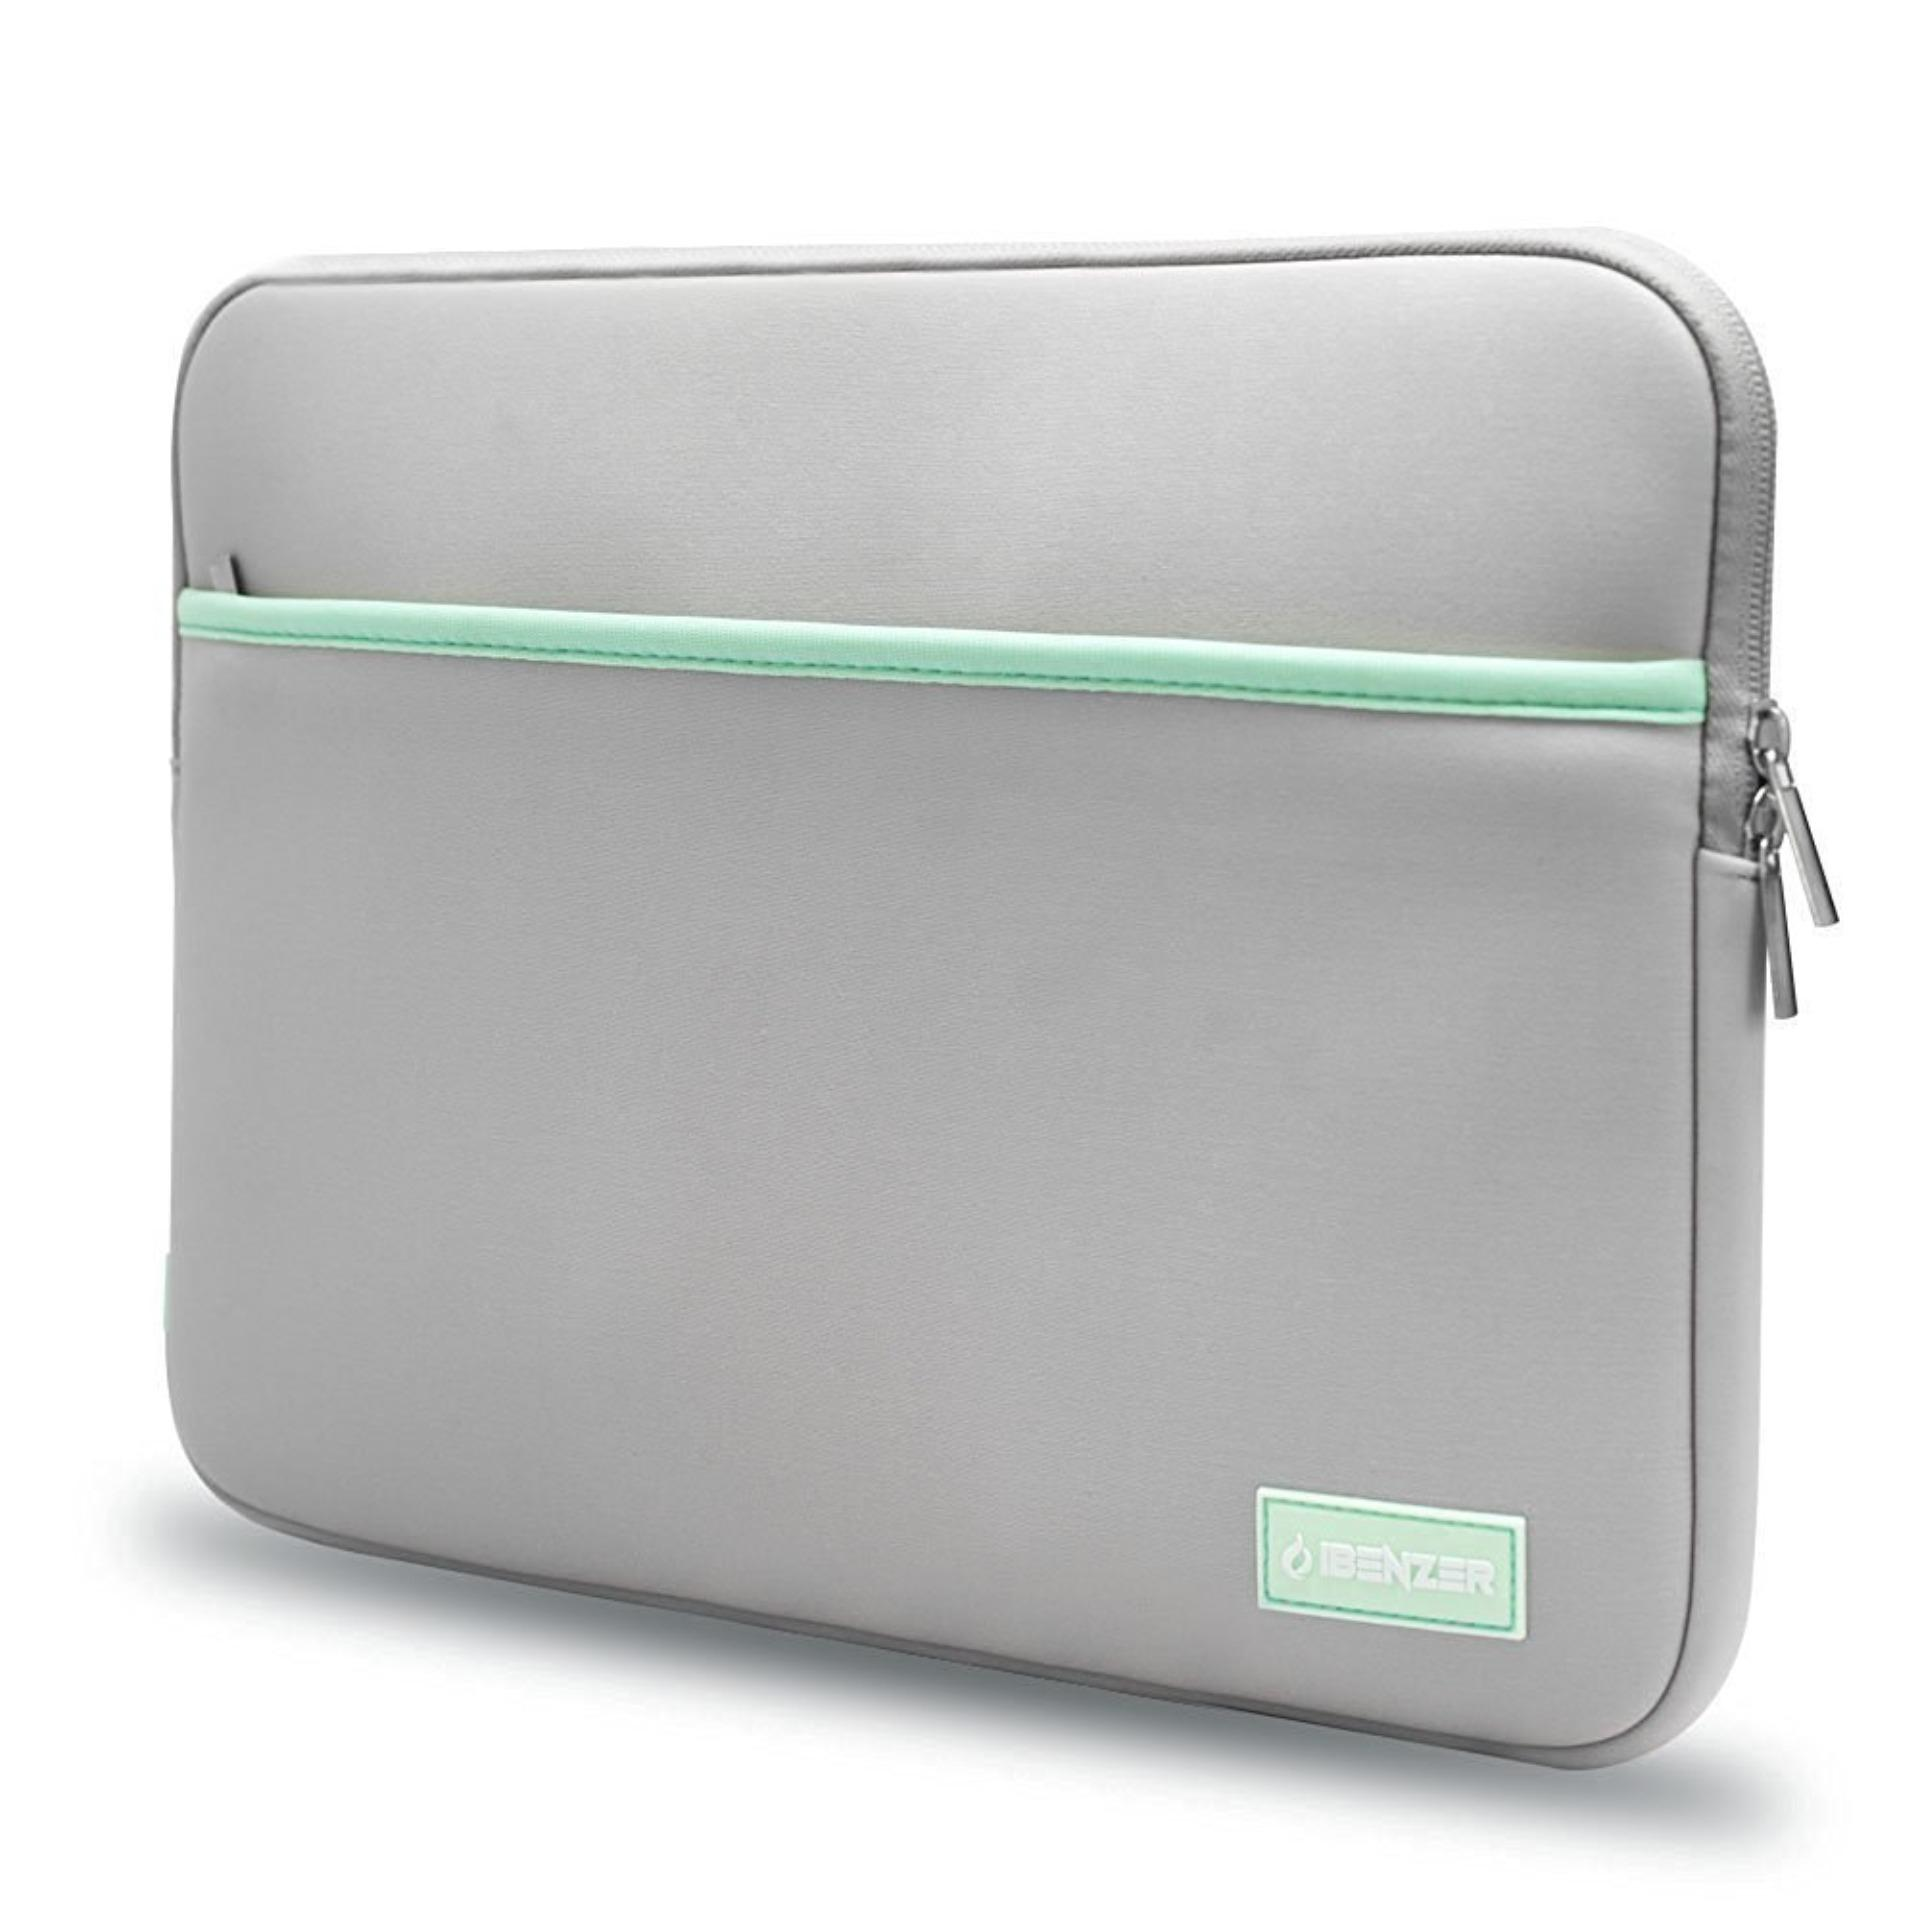 Cooltech Tas Laptop Softcase Pu Leather Sleeve Case For Apple New Macbook Pro Air Retina 116 154 Inch Permalink To Ibenzer Universal 13 Grey Harga Promo